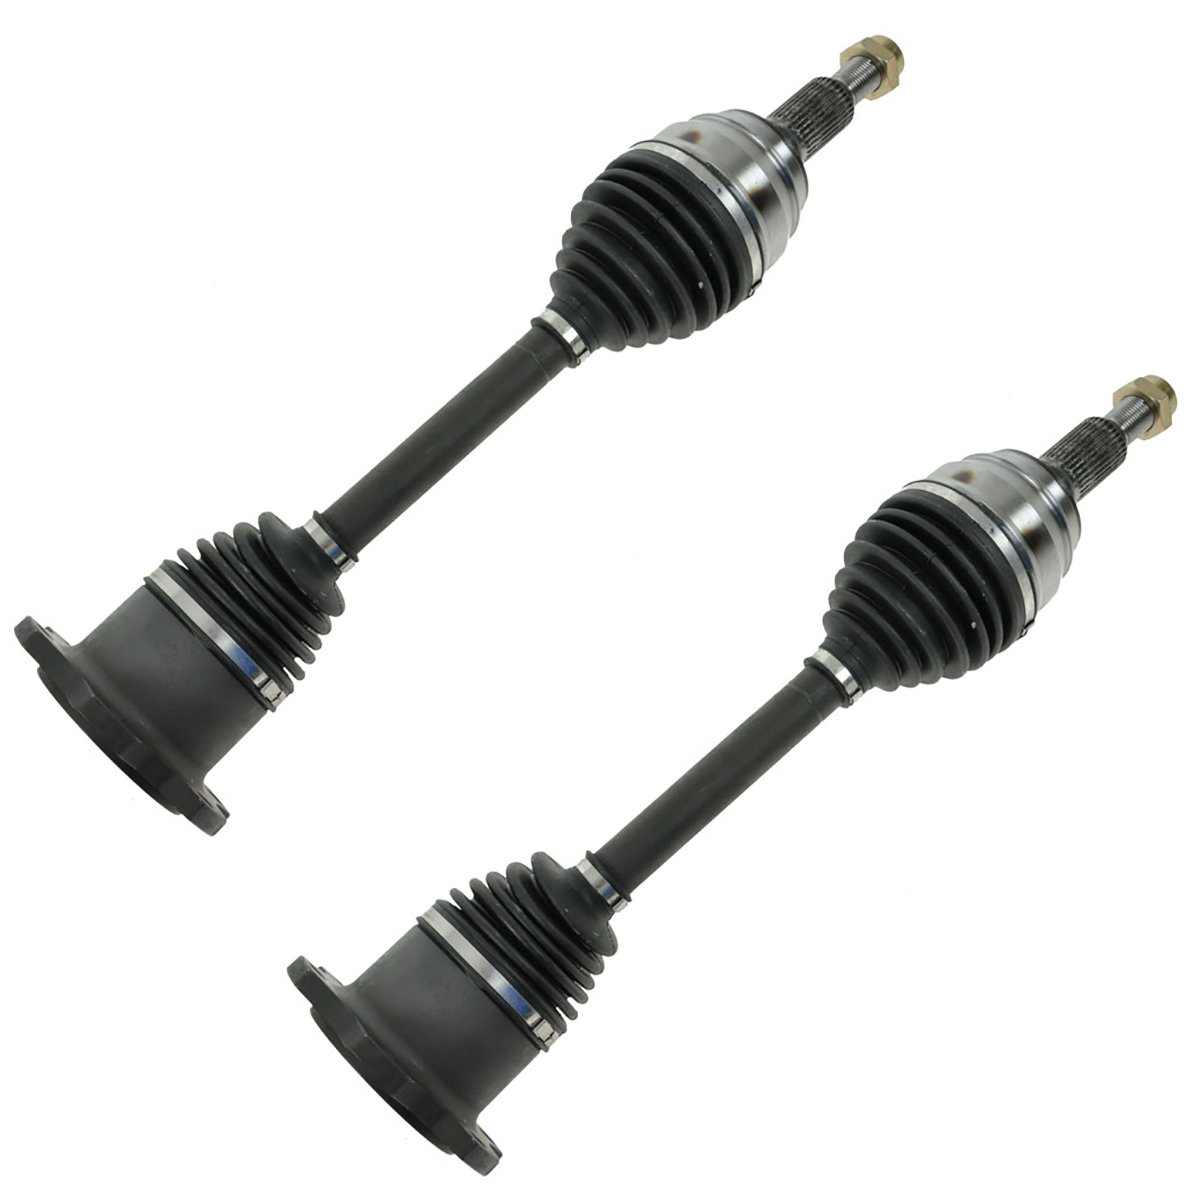 Front CV Axle Shaft Pair Set of 2 for Silverado Tahoe Suburban Yukon Escalade by TRQ